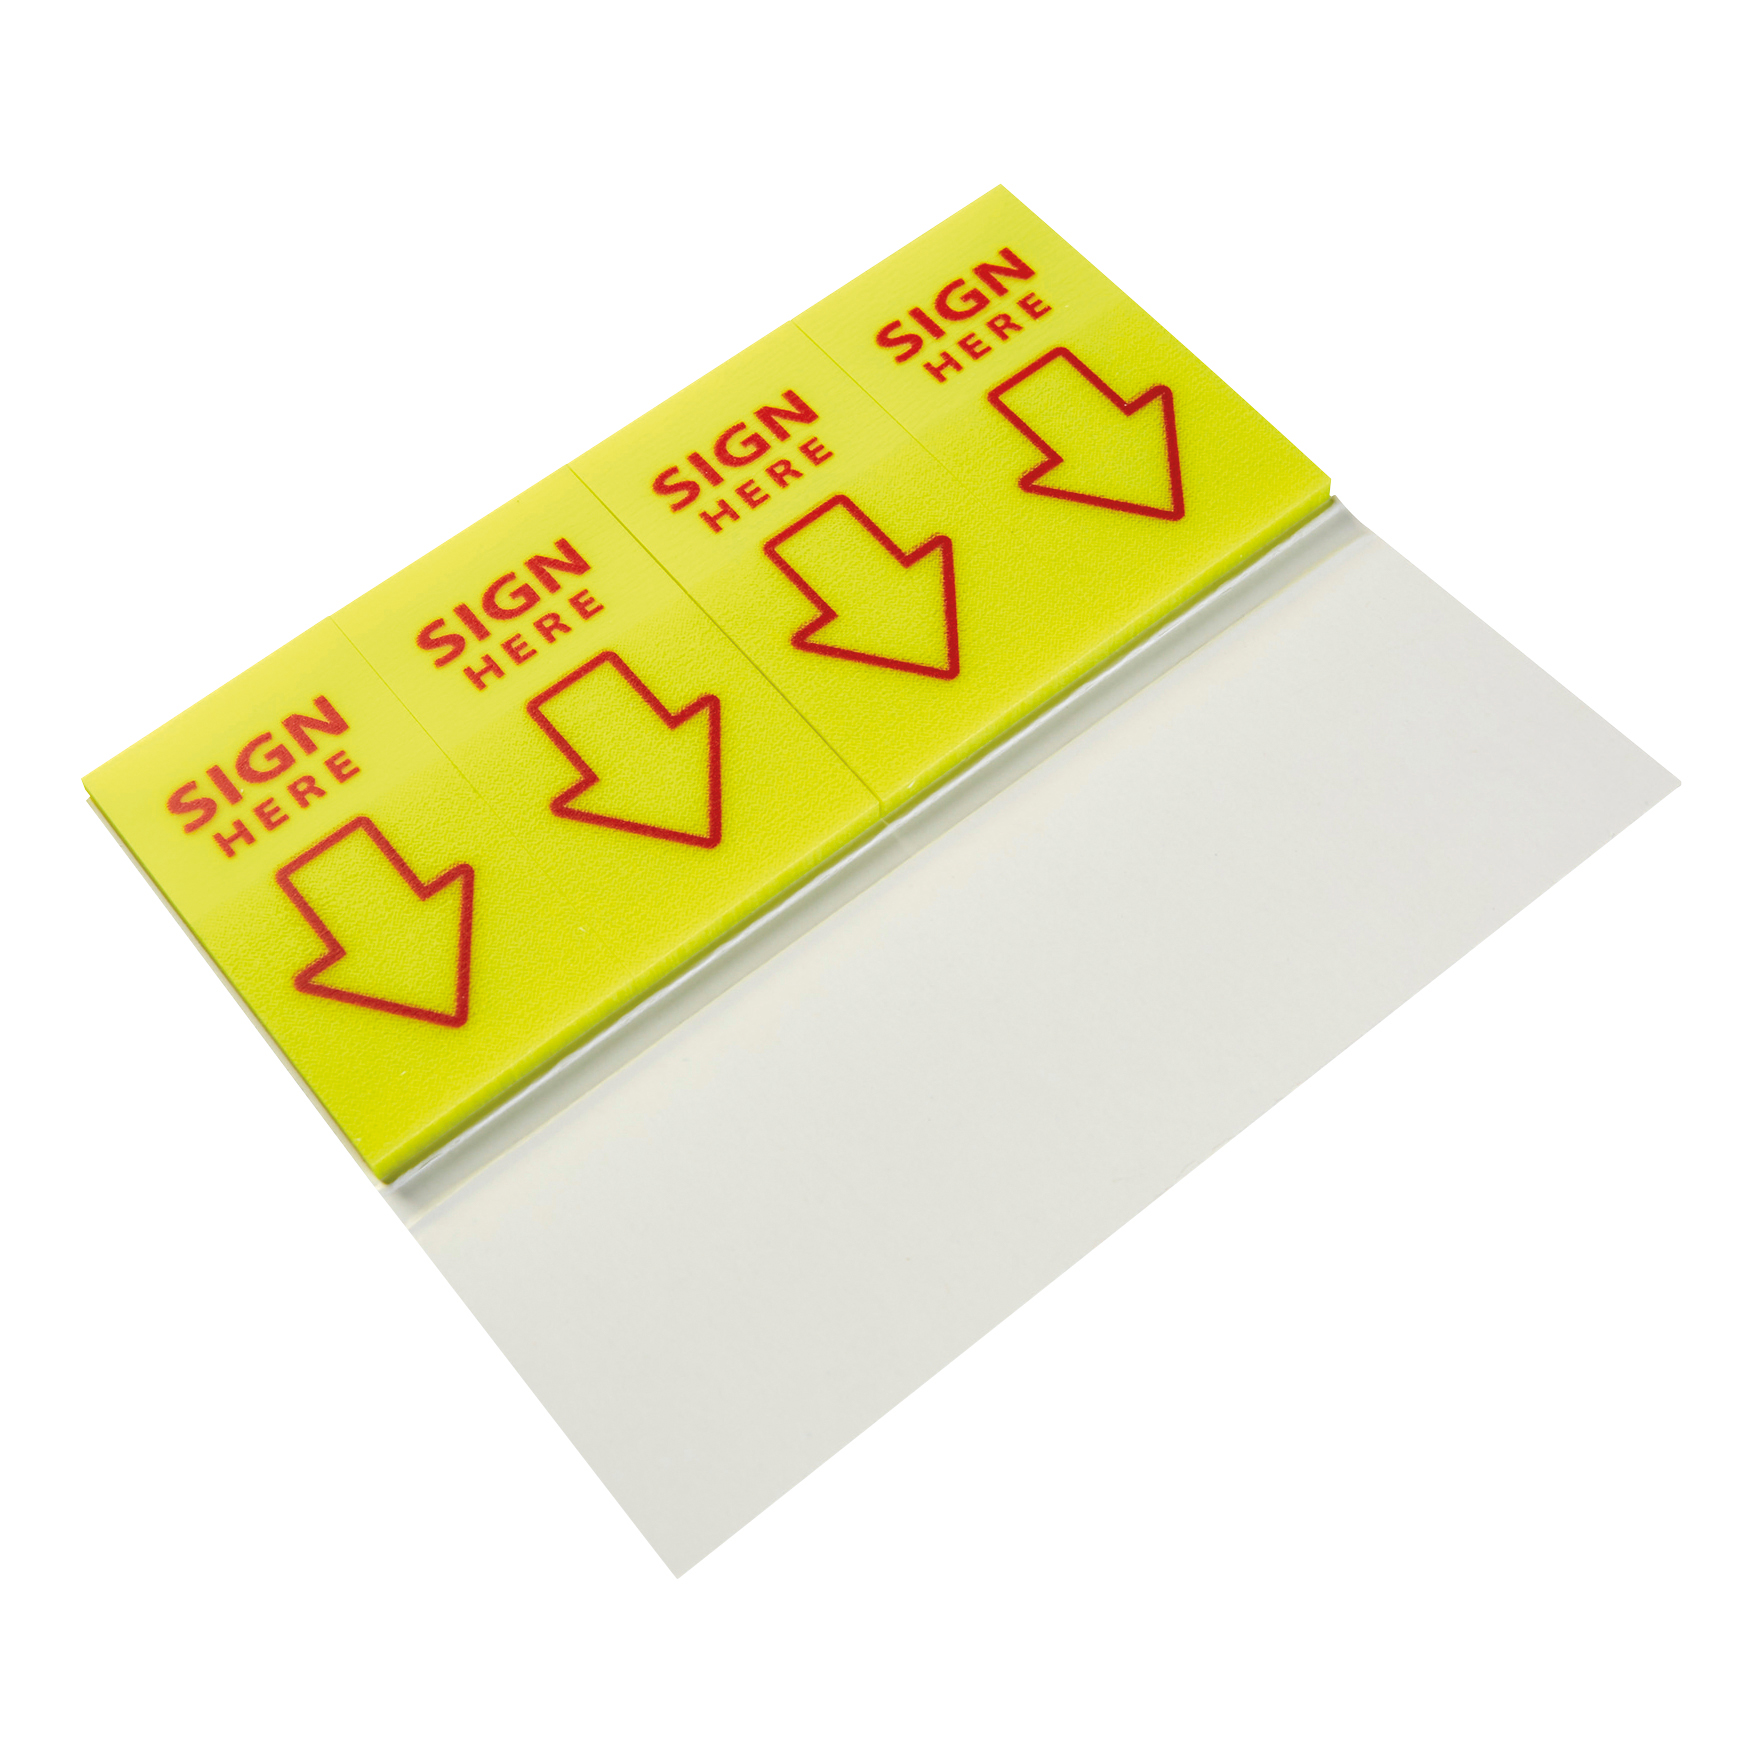 5 Star Office Sign Here Index Flags Tab With Red Arrow 46x25mm 40x4 per cover 5 covers [800 Flags]